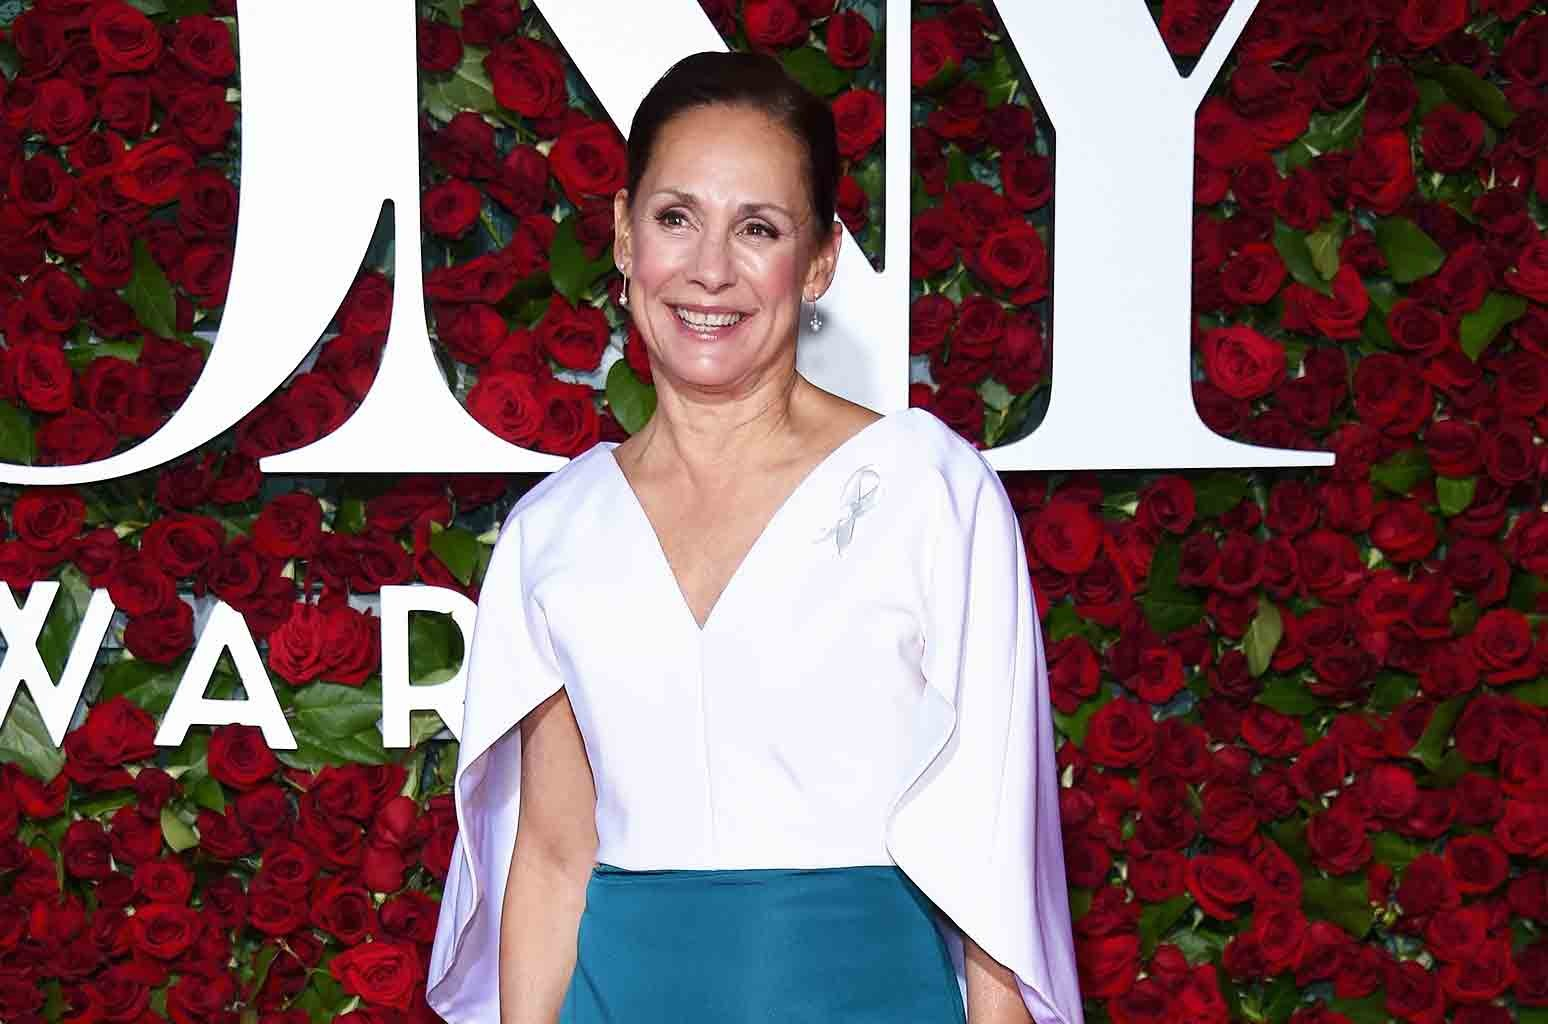 Laurie Metcalf attends the 70th Annual Tony Awards at The Beacon Theatre on June 12, 2016 in New York City.